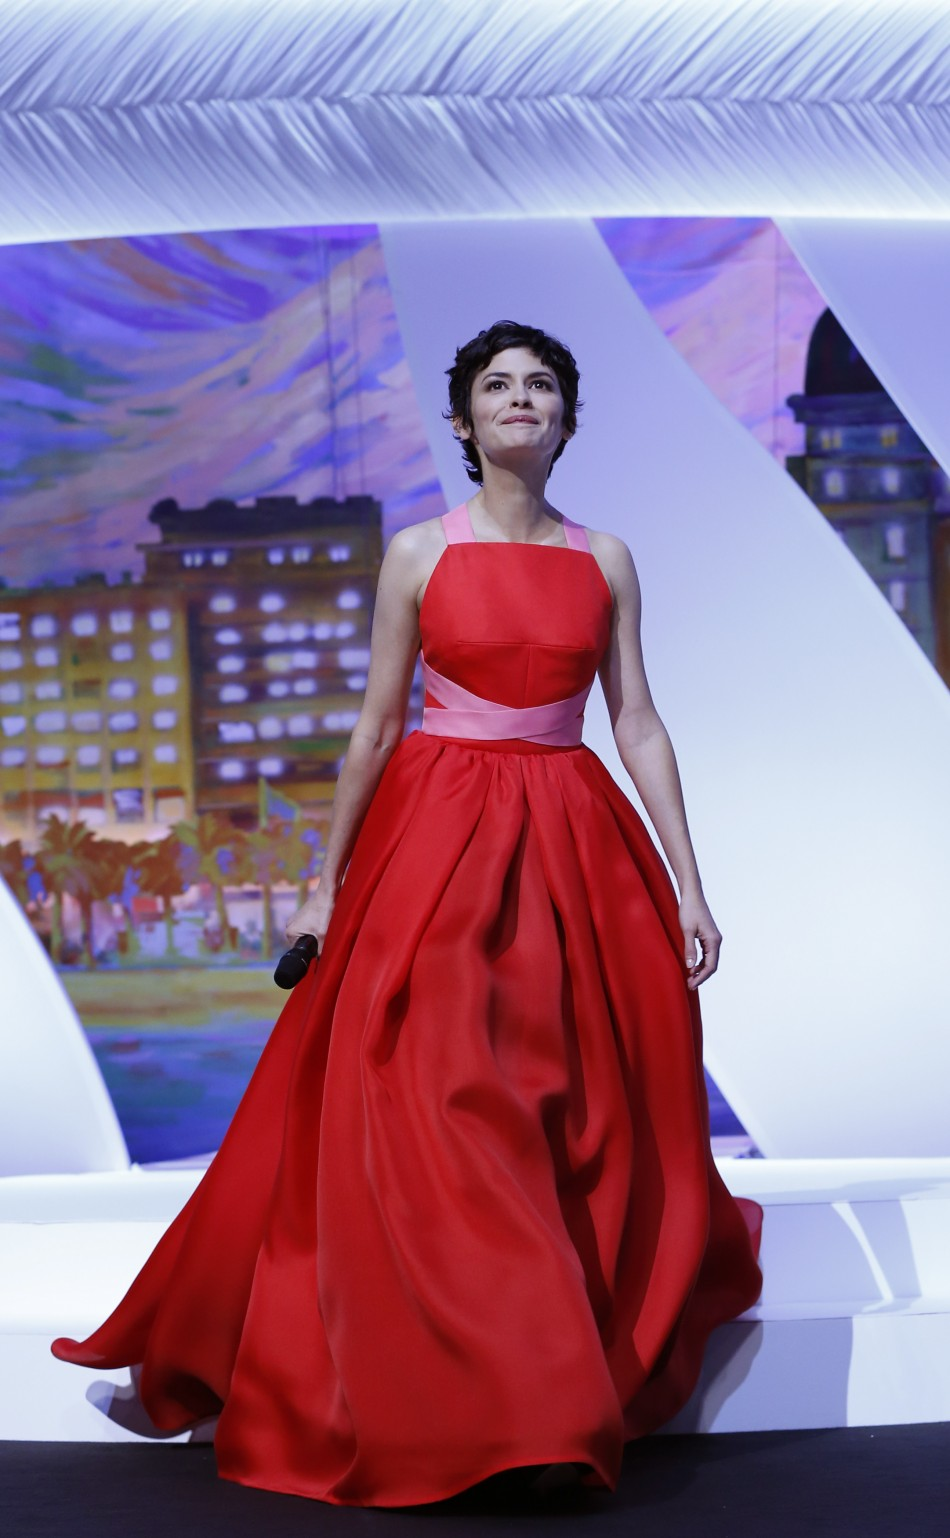 Mistress of Ceremony actress Audrey Tautou arrives on stage during the closing ceremony of the 66th Cannes Film Festival in Cannes May 26, 2013.